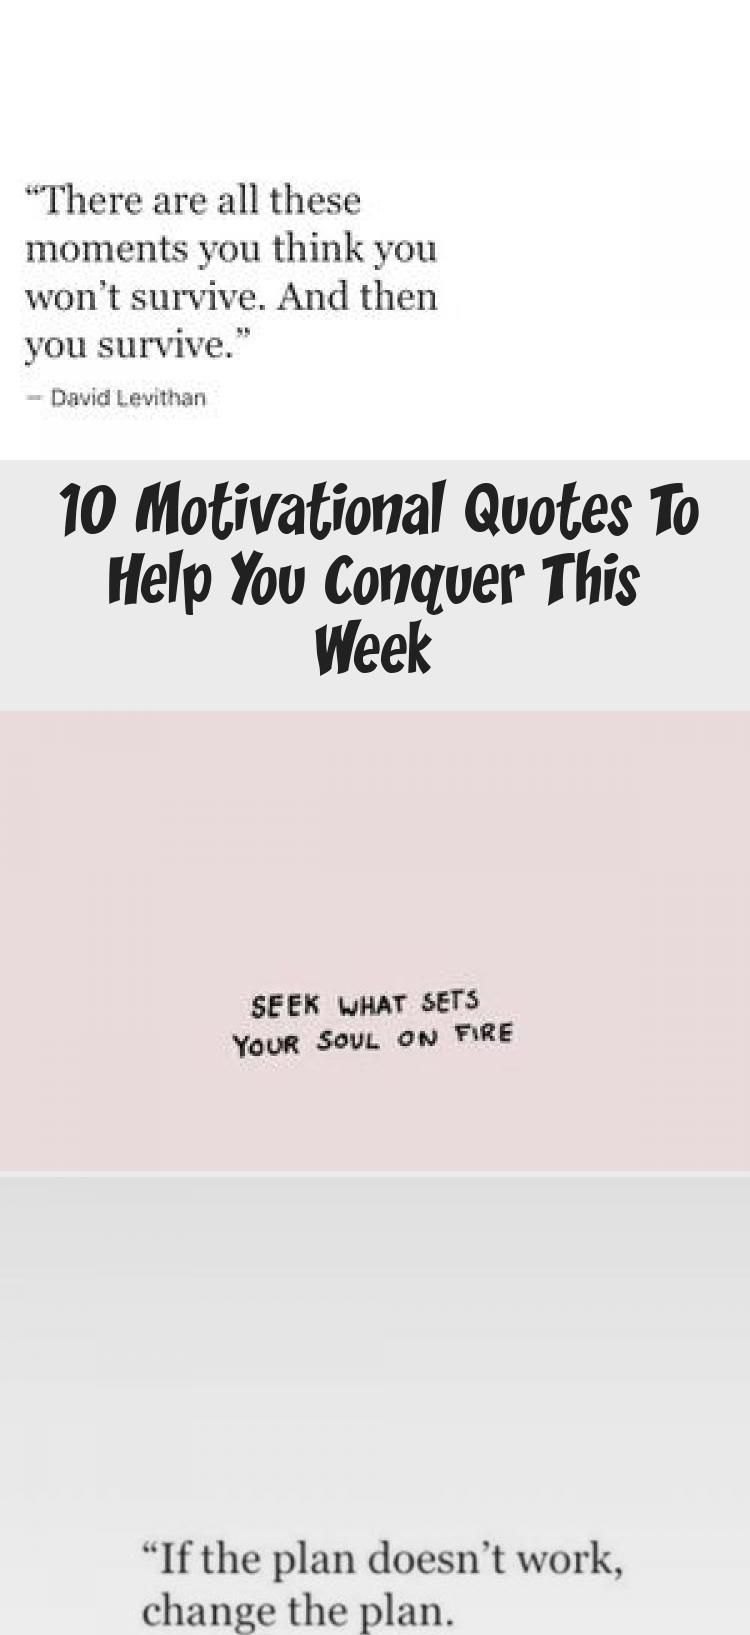 10 Motivational Quotes To Help You Conquer This Week (With